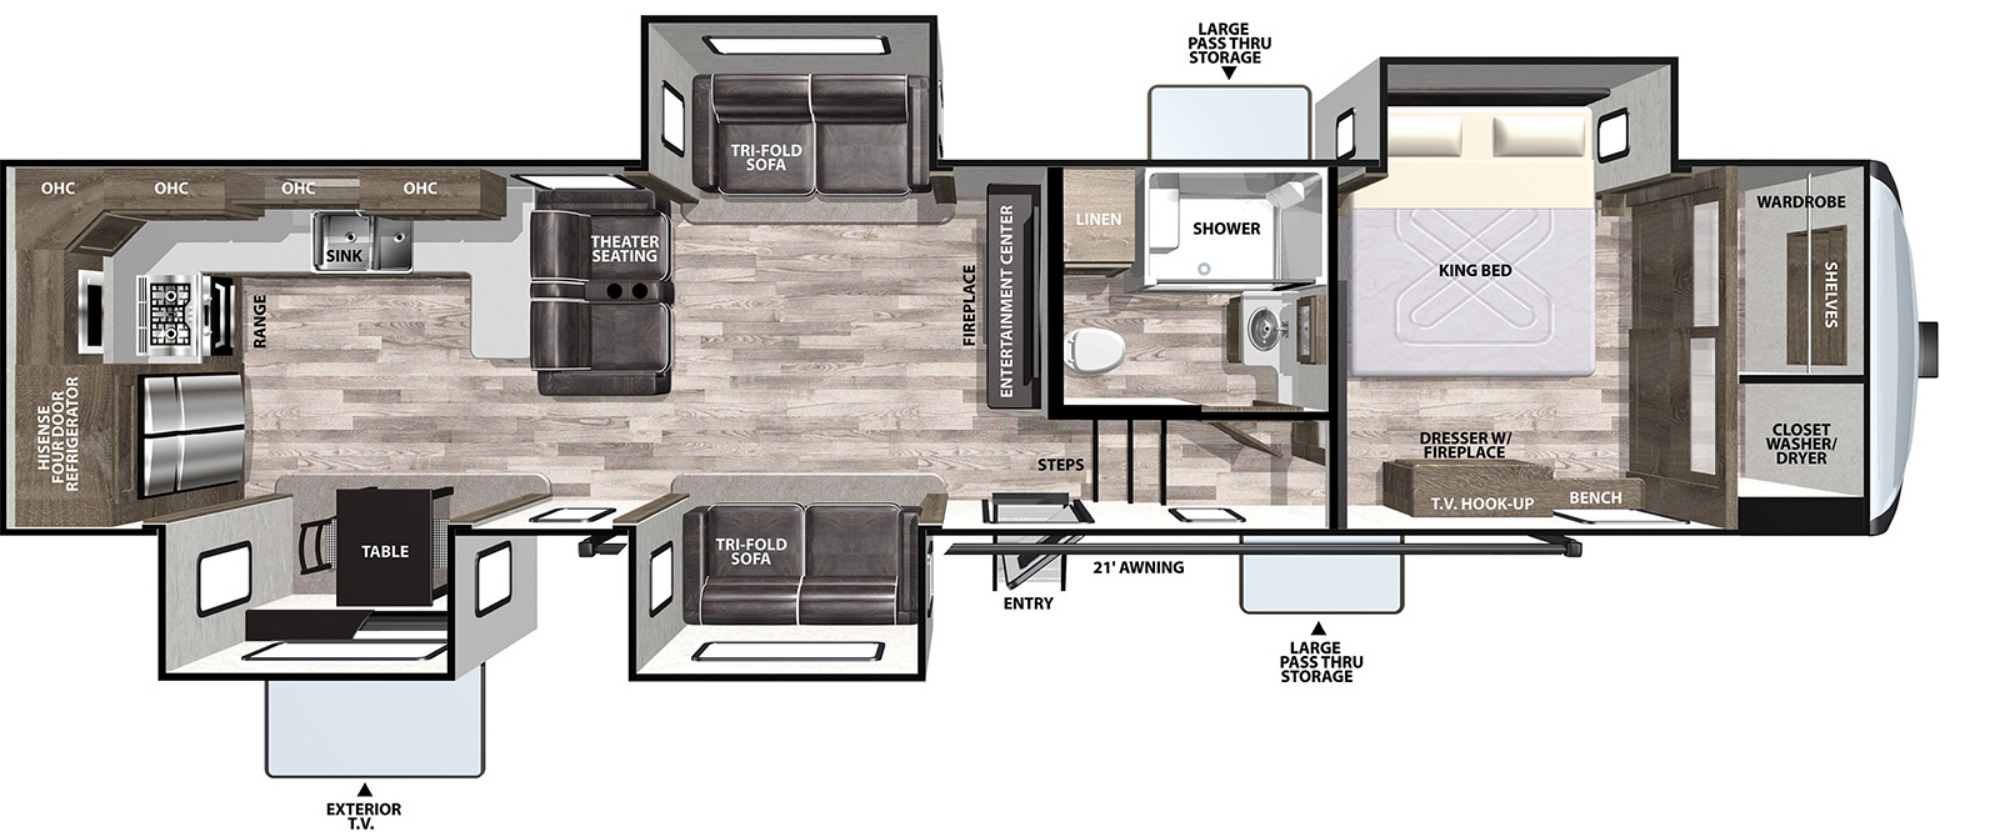 View Floor Plan for 2020 FOREST RIVER CARDINAL LUXURY 375BKX